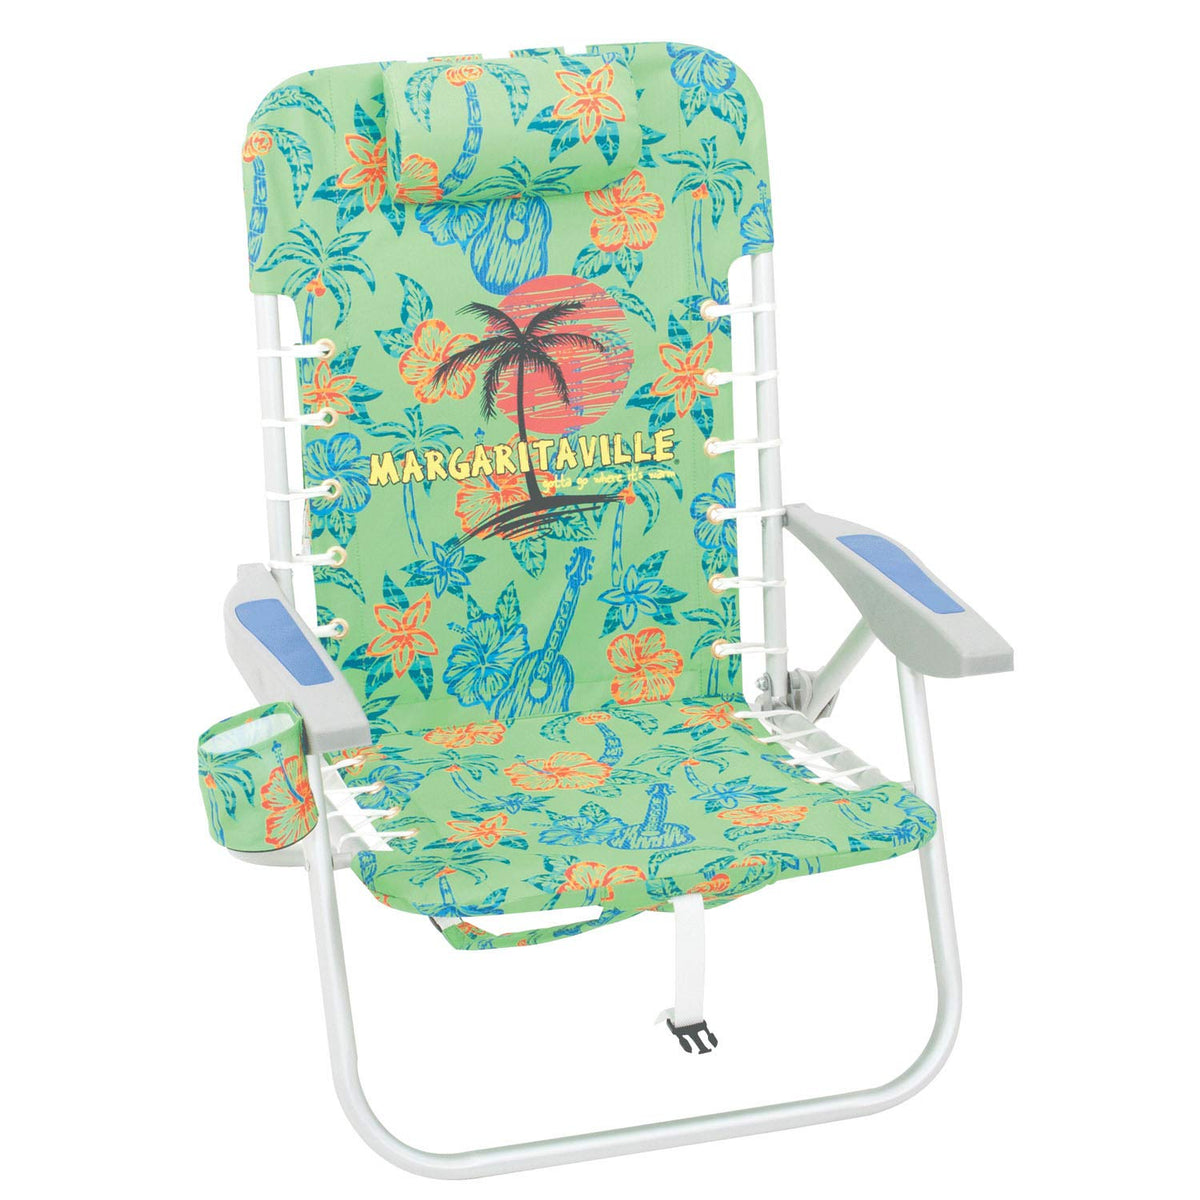 Alum BKPACK Chair-Green